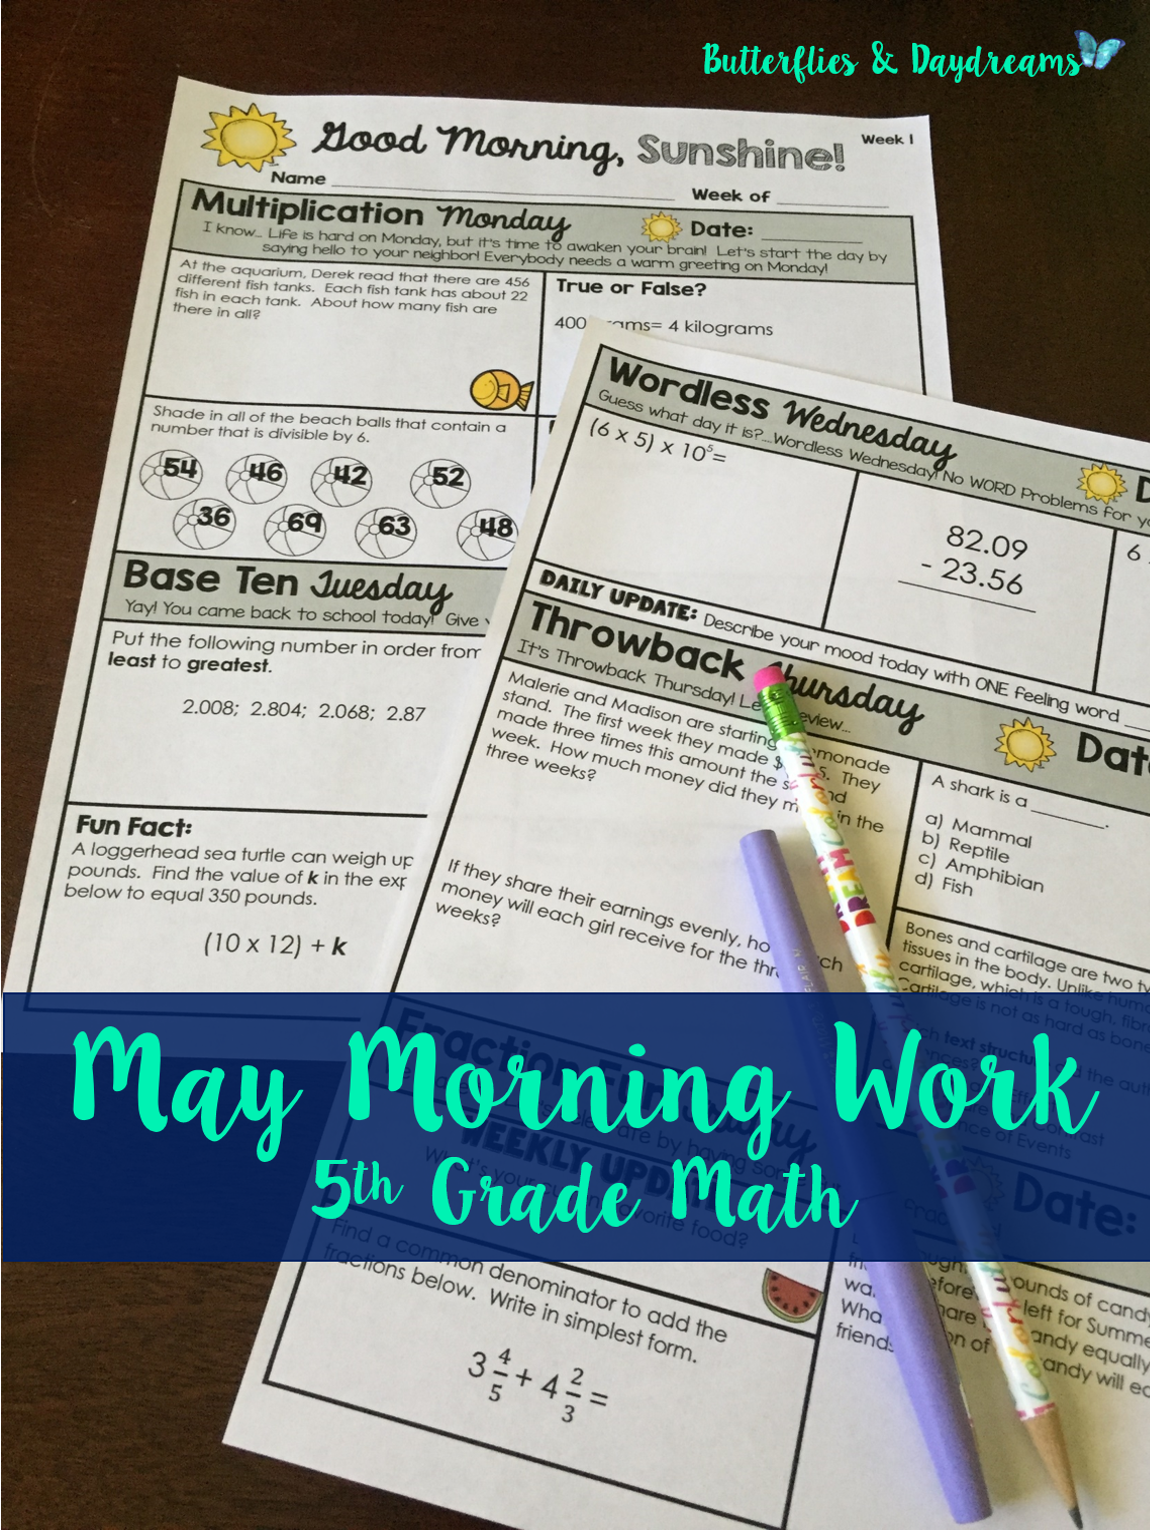 Math Morning Work 5th Grade May